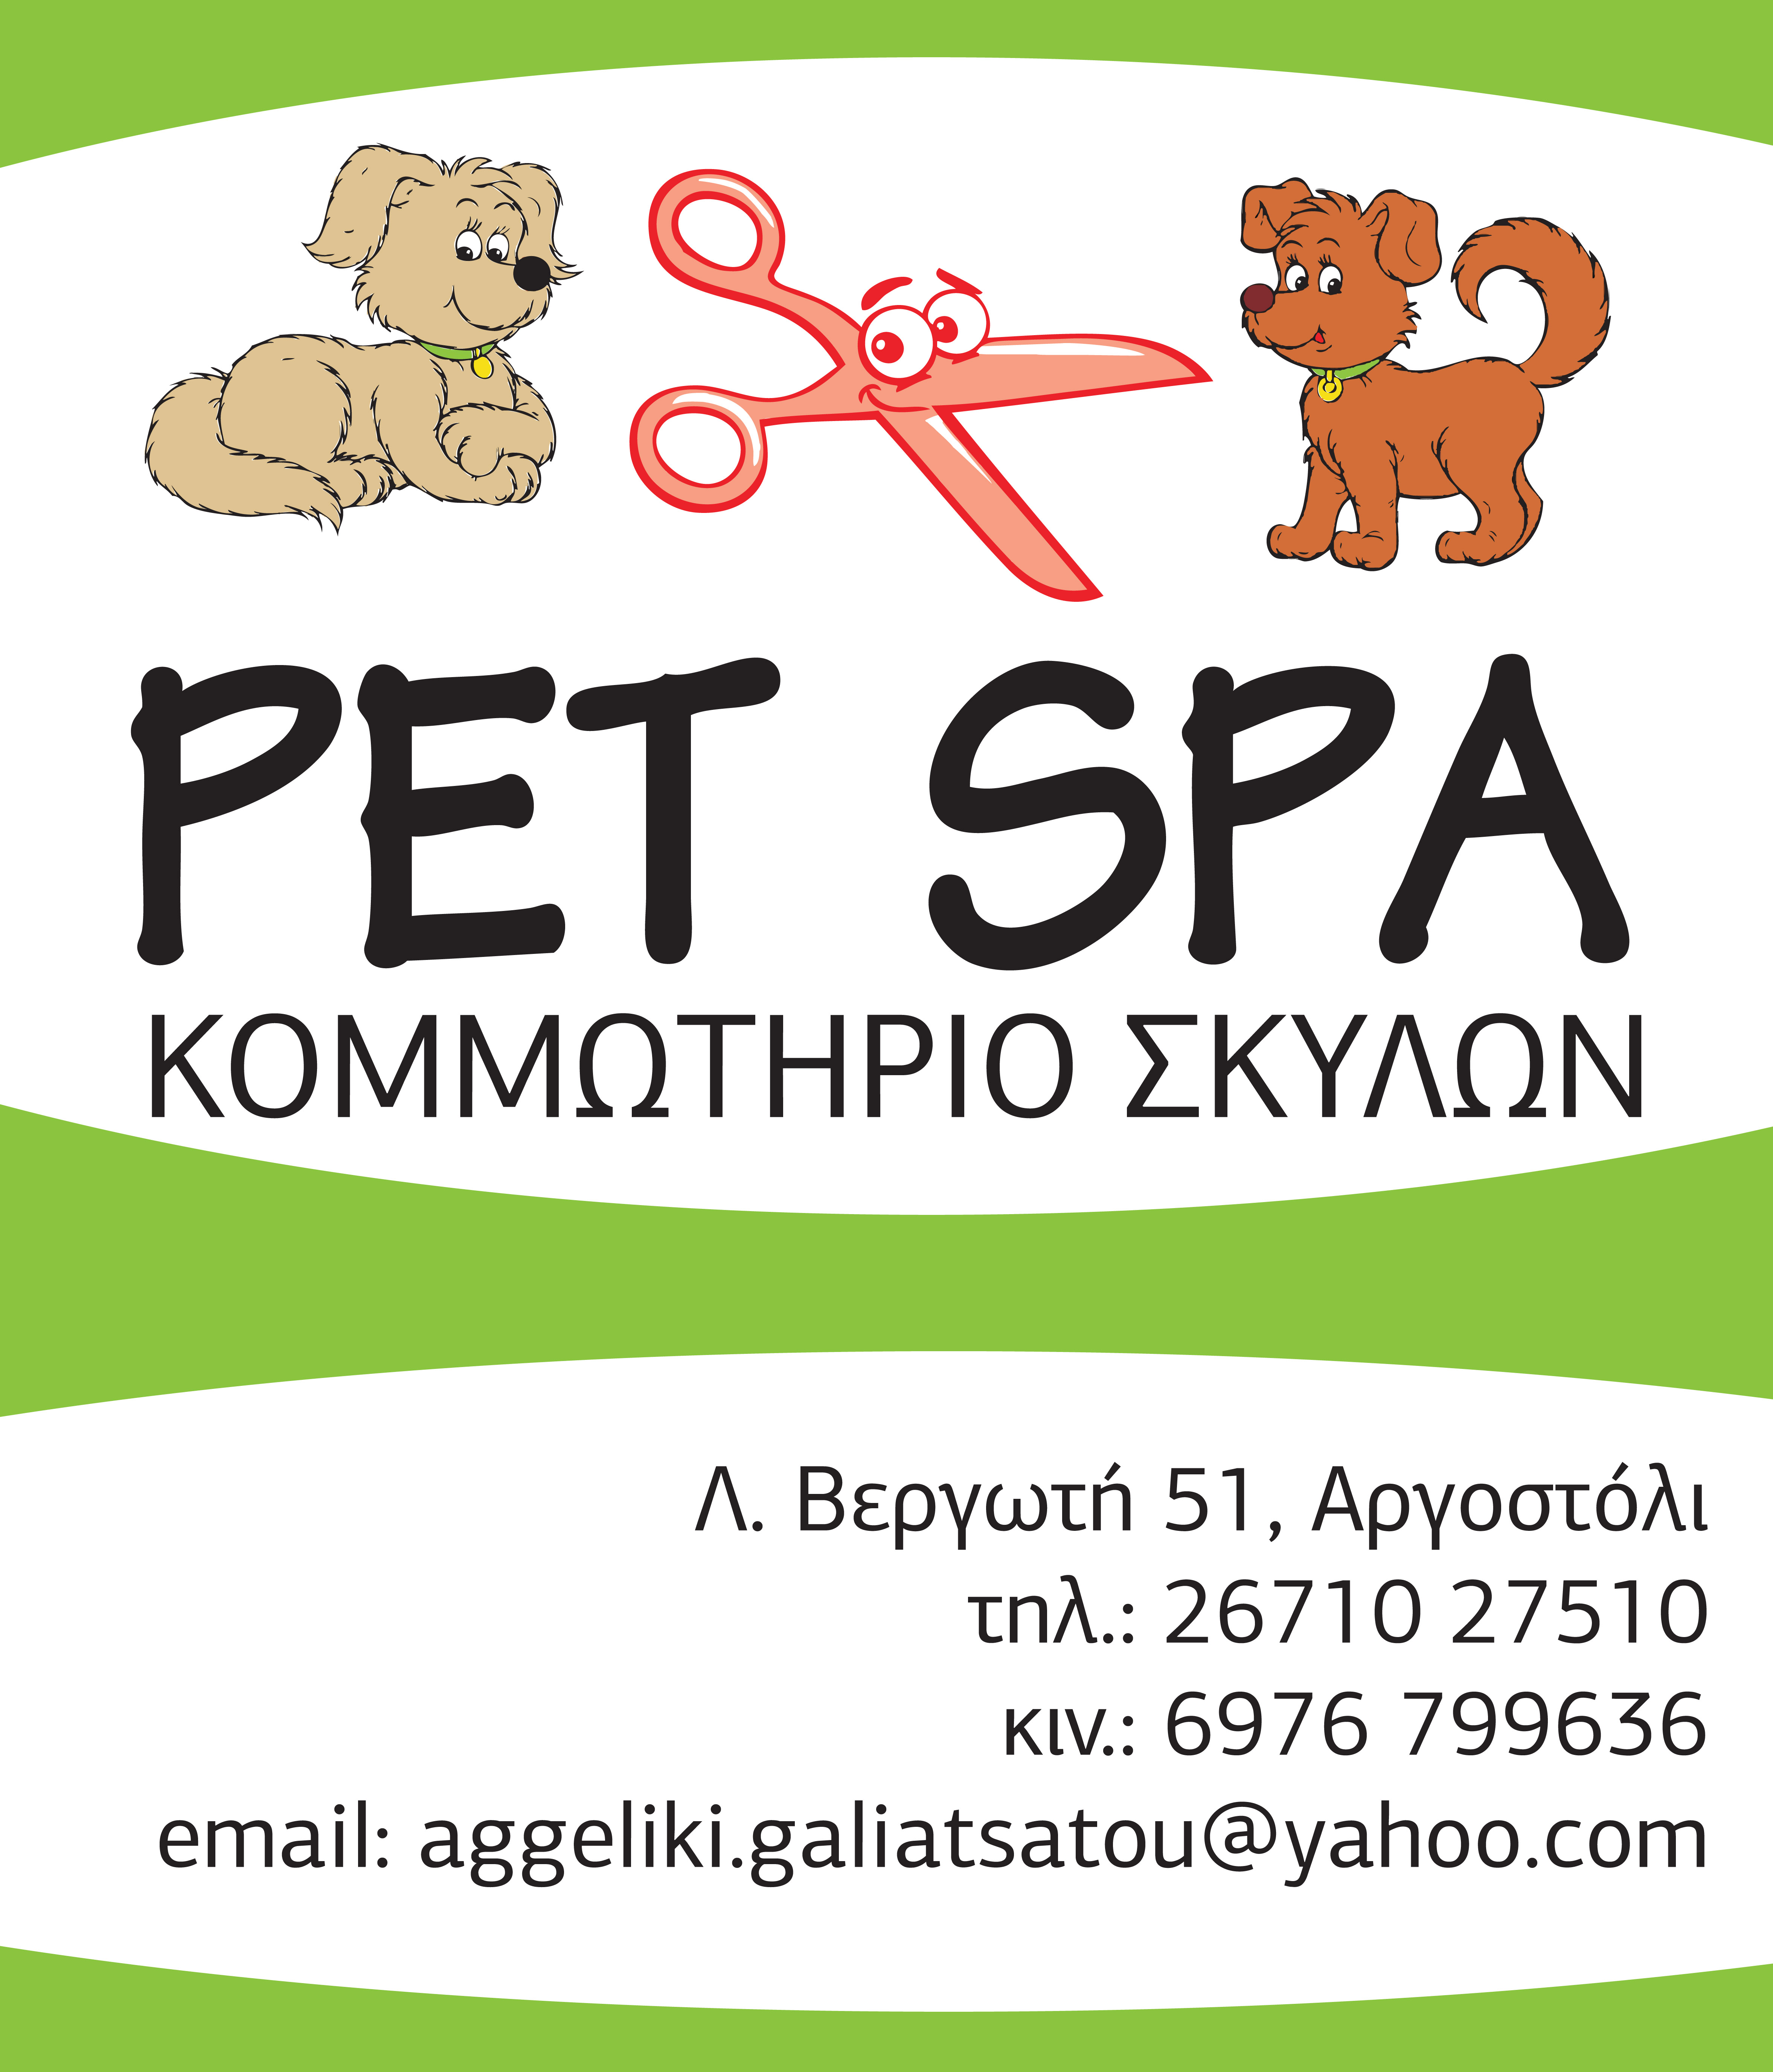 grooming-salon-pet-spa-kefalonia.jpg